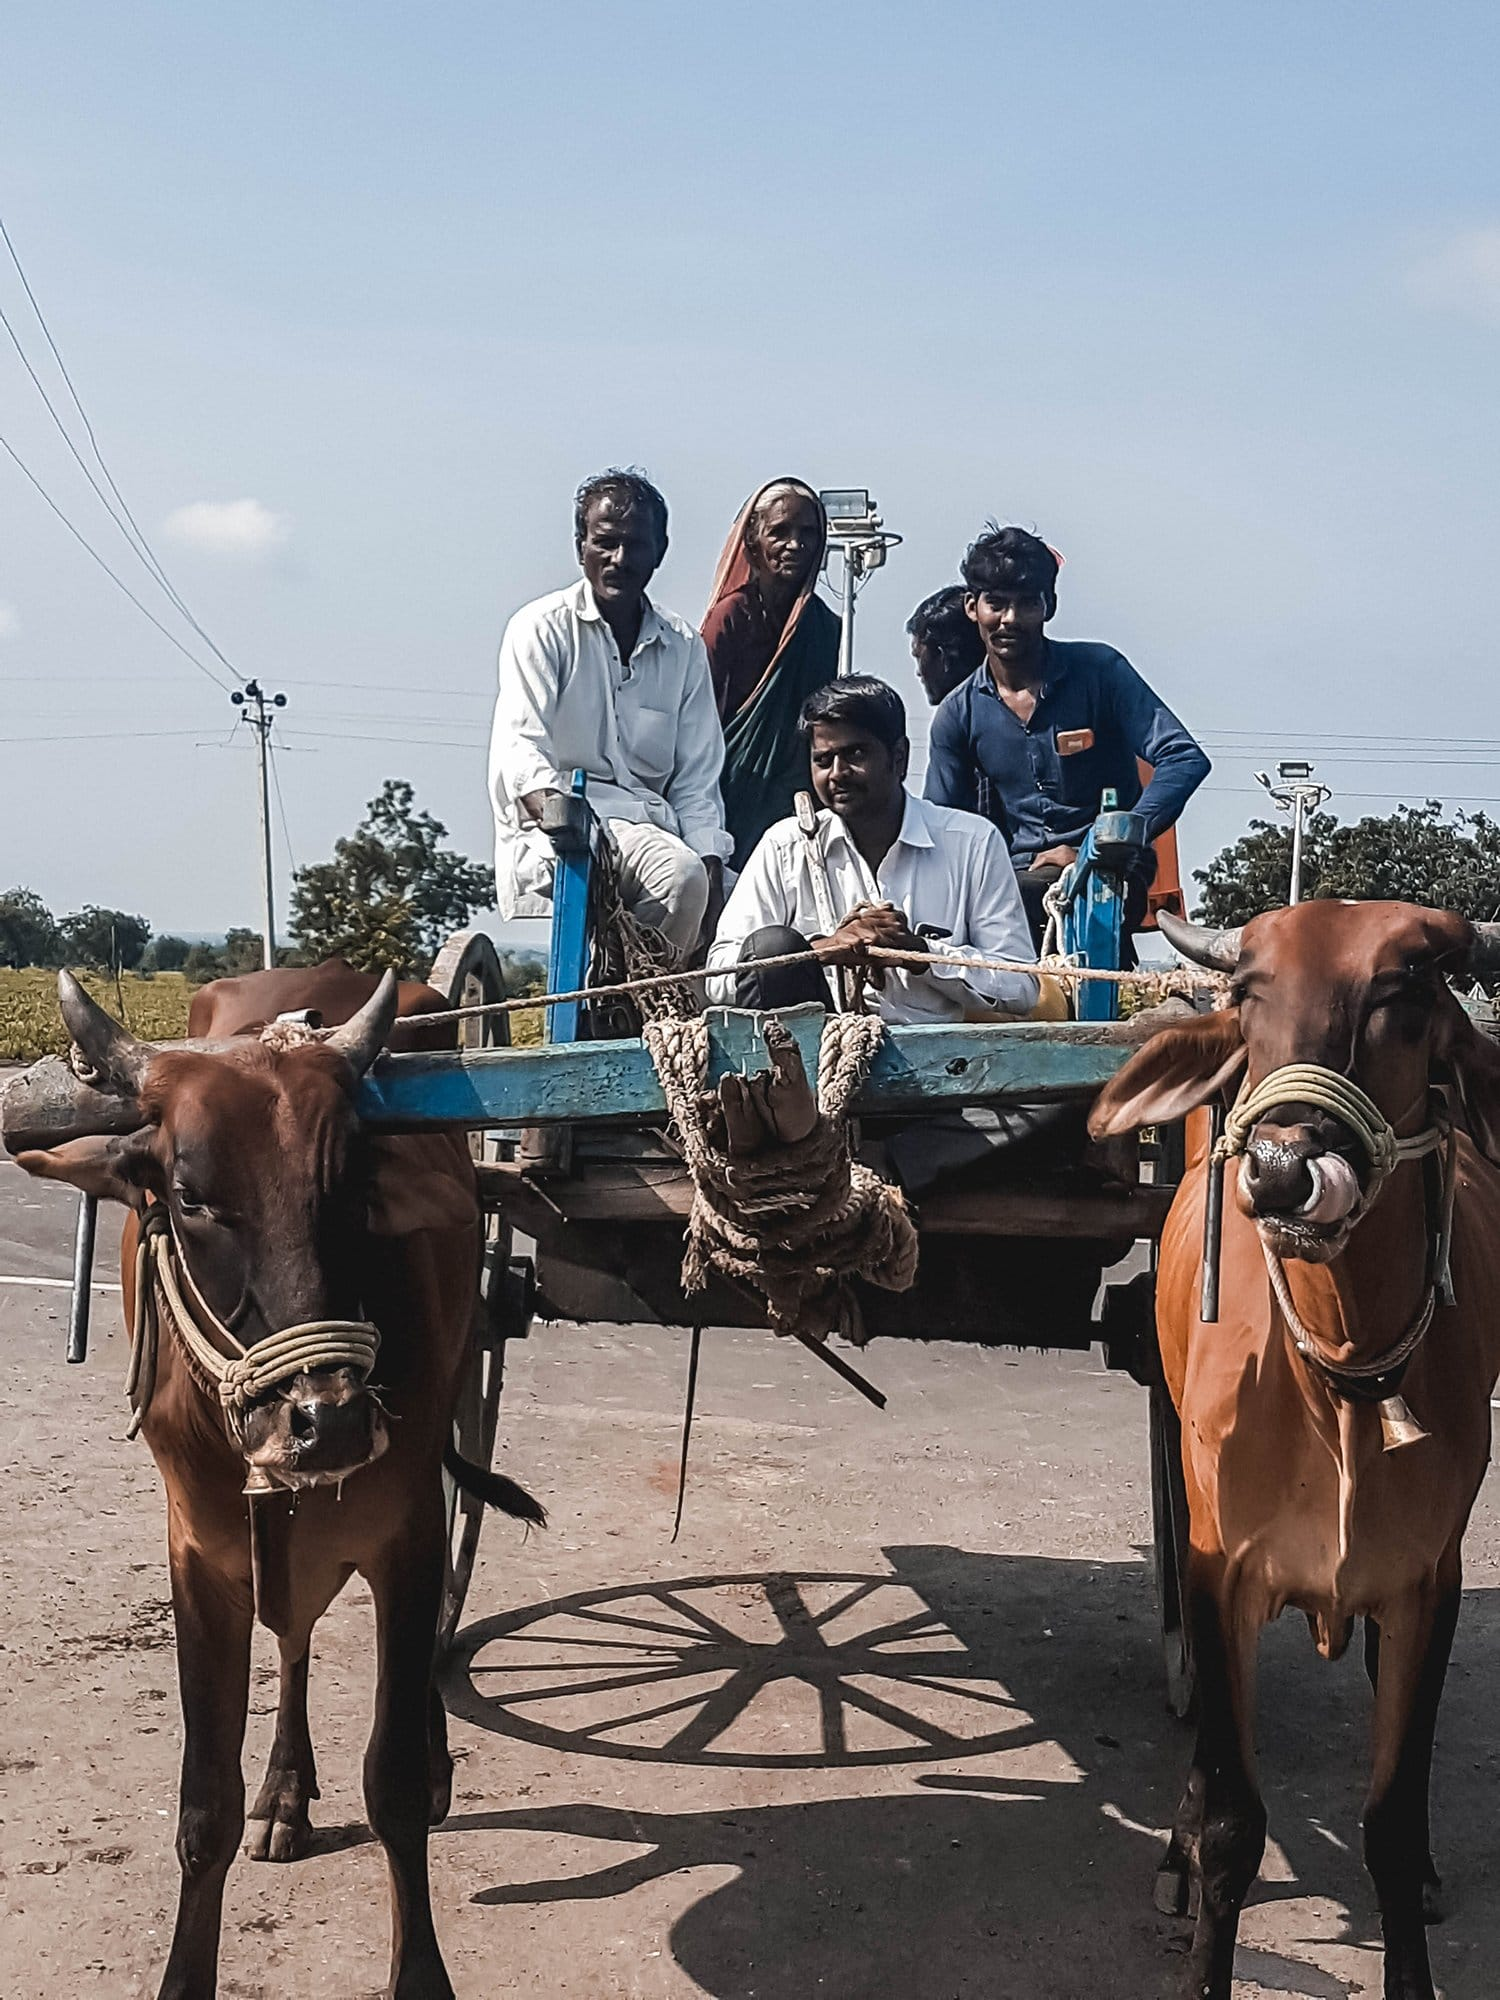 Local transportation in the rural Deccan Plateau